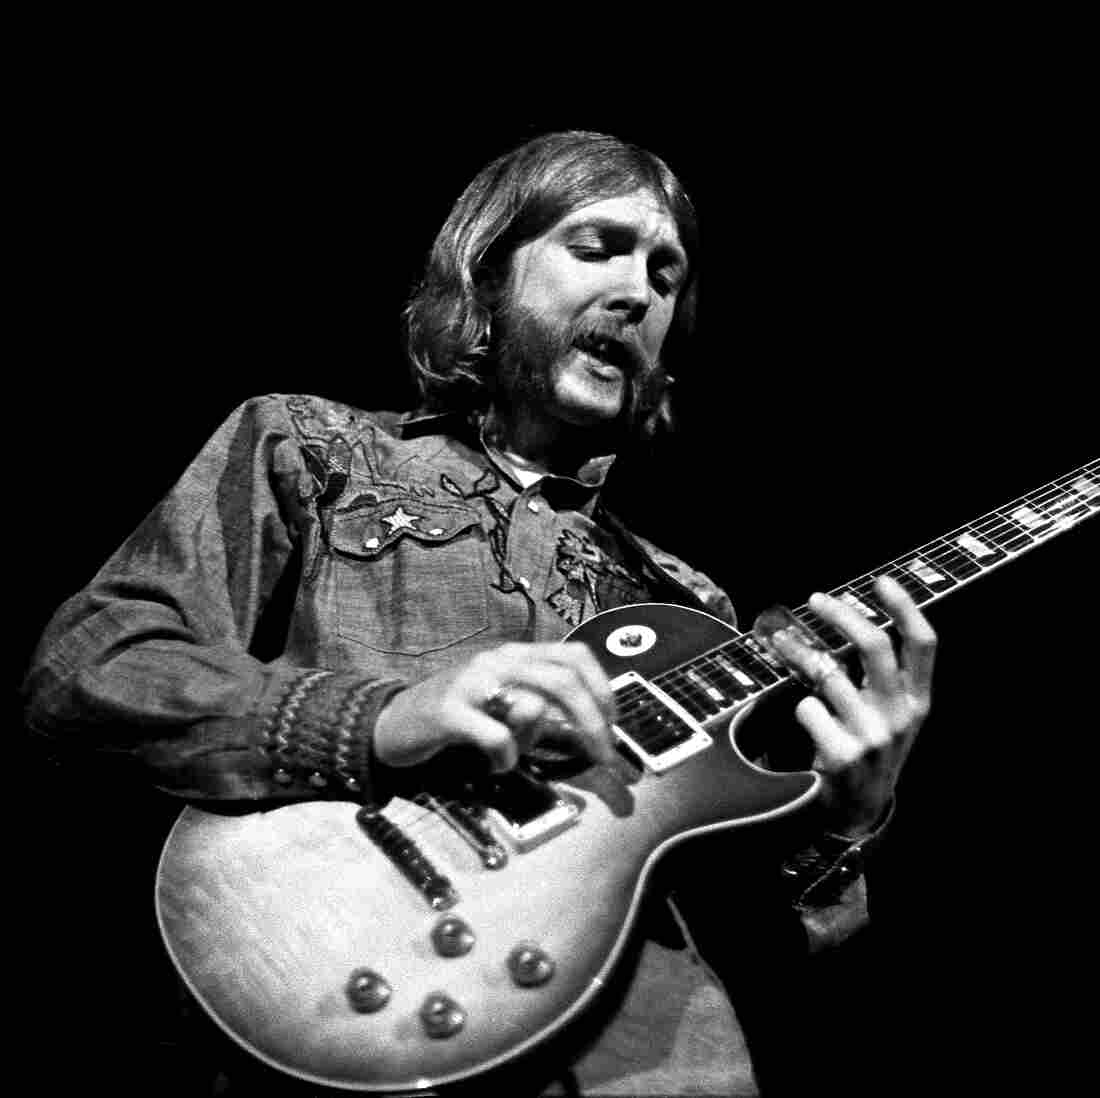 Duane Allman: Guitar Playing That 'Gets Inside Of You'